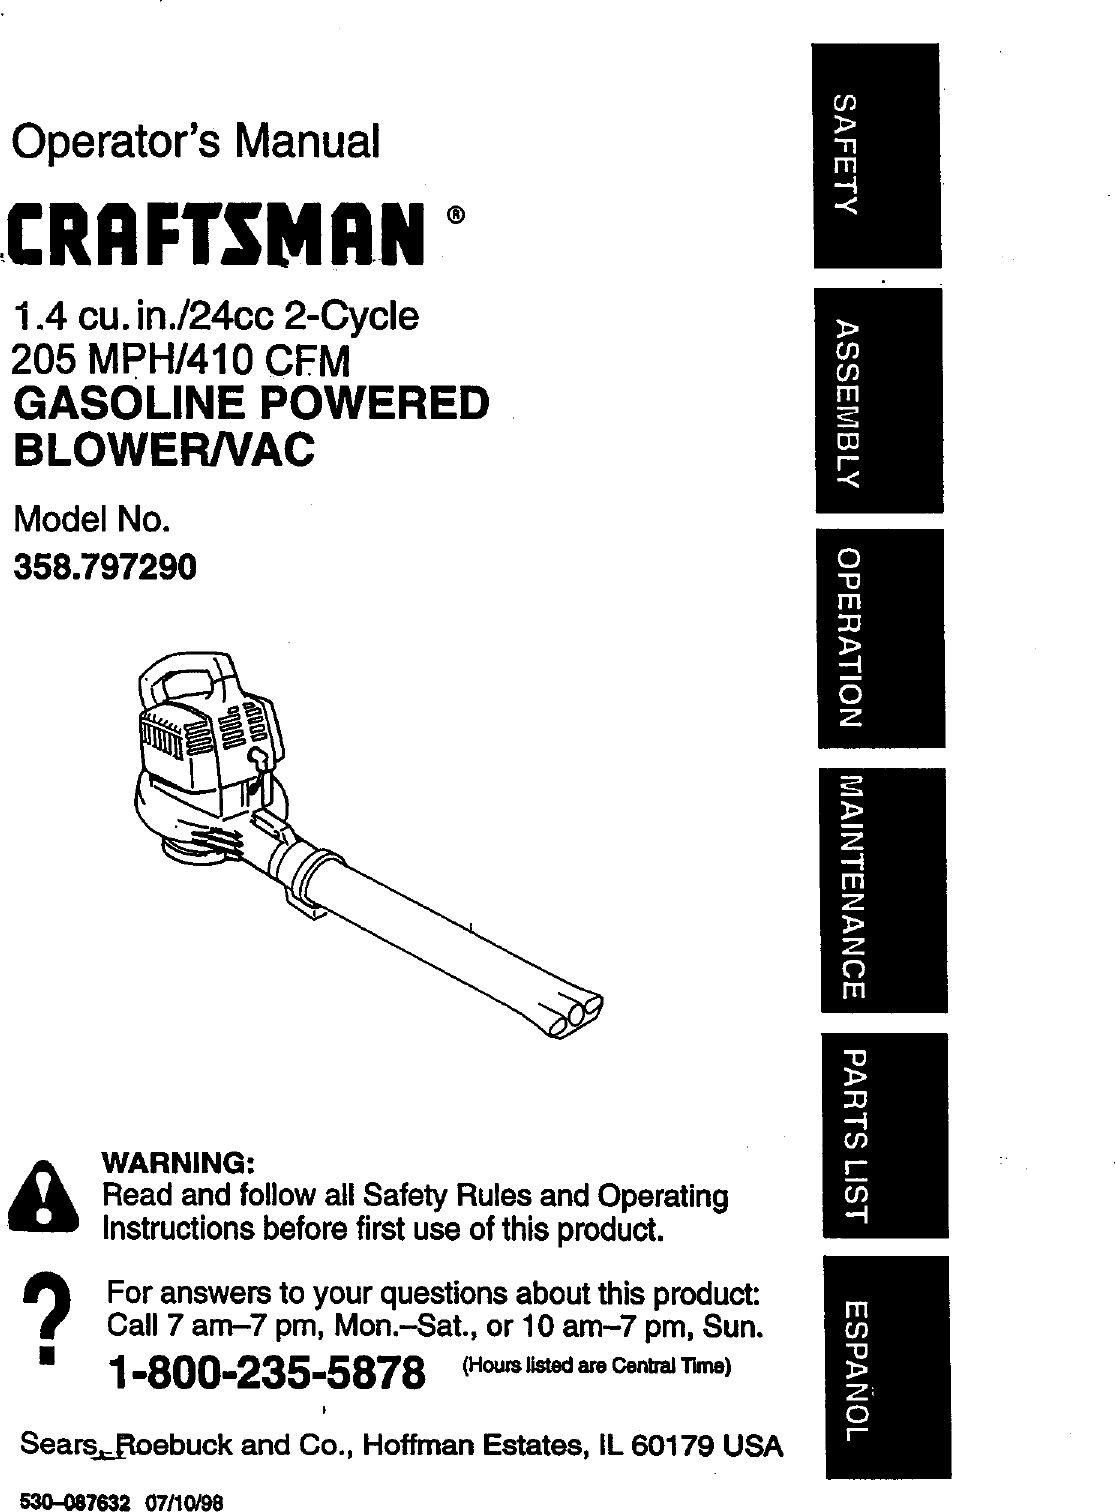 Craftsman 358797290 User Manual GAS BLOWER Manuals And